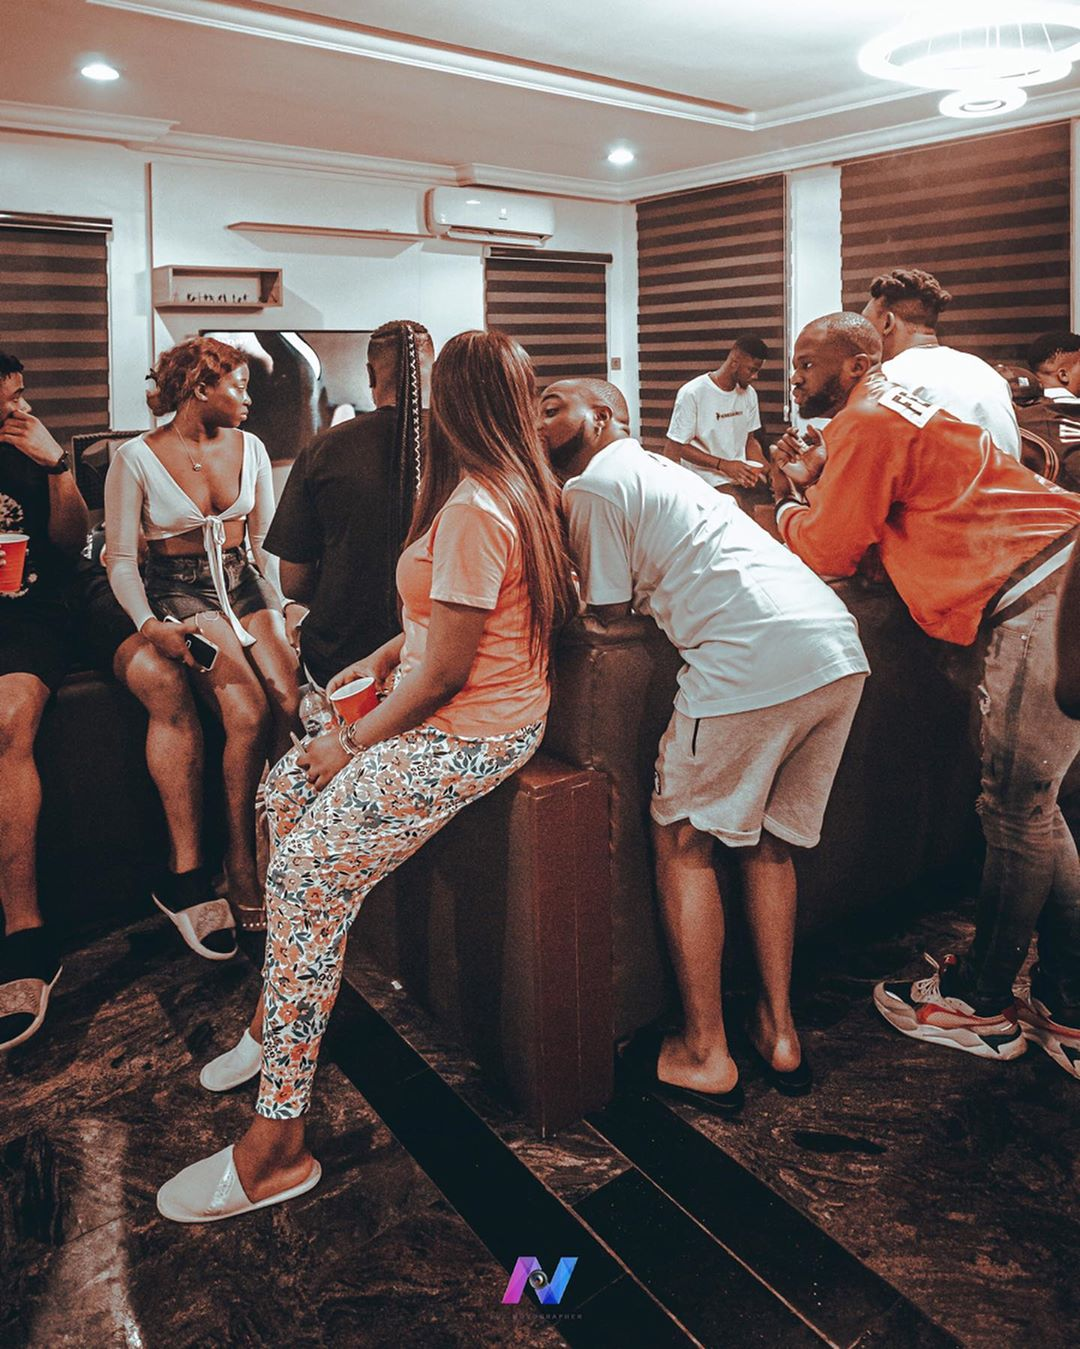 Davido & 31 others did not test +ve to COVID-19, Chioma still showing no symptoms after day 5 - Someone is chasing clout here!